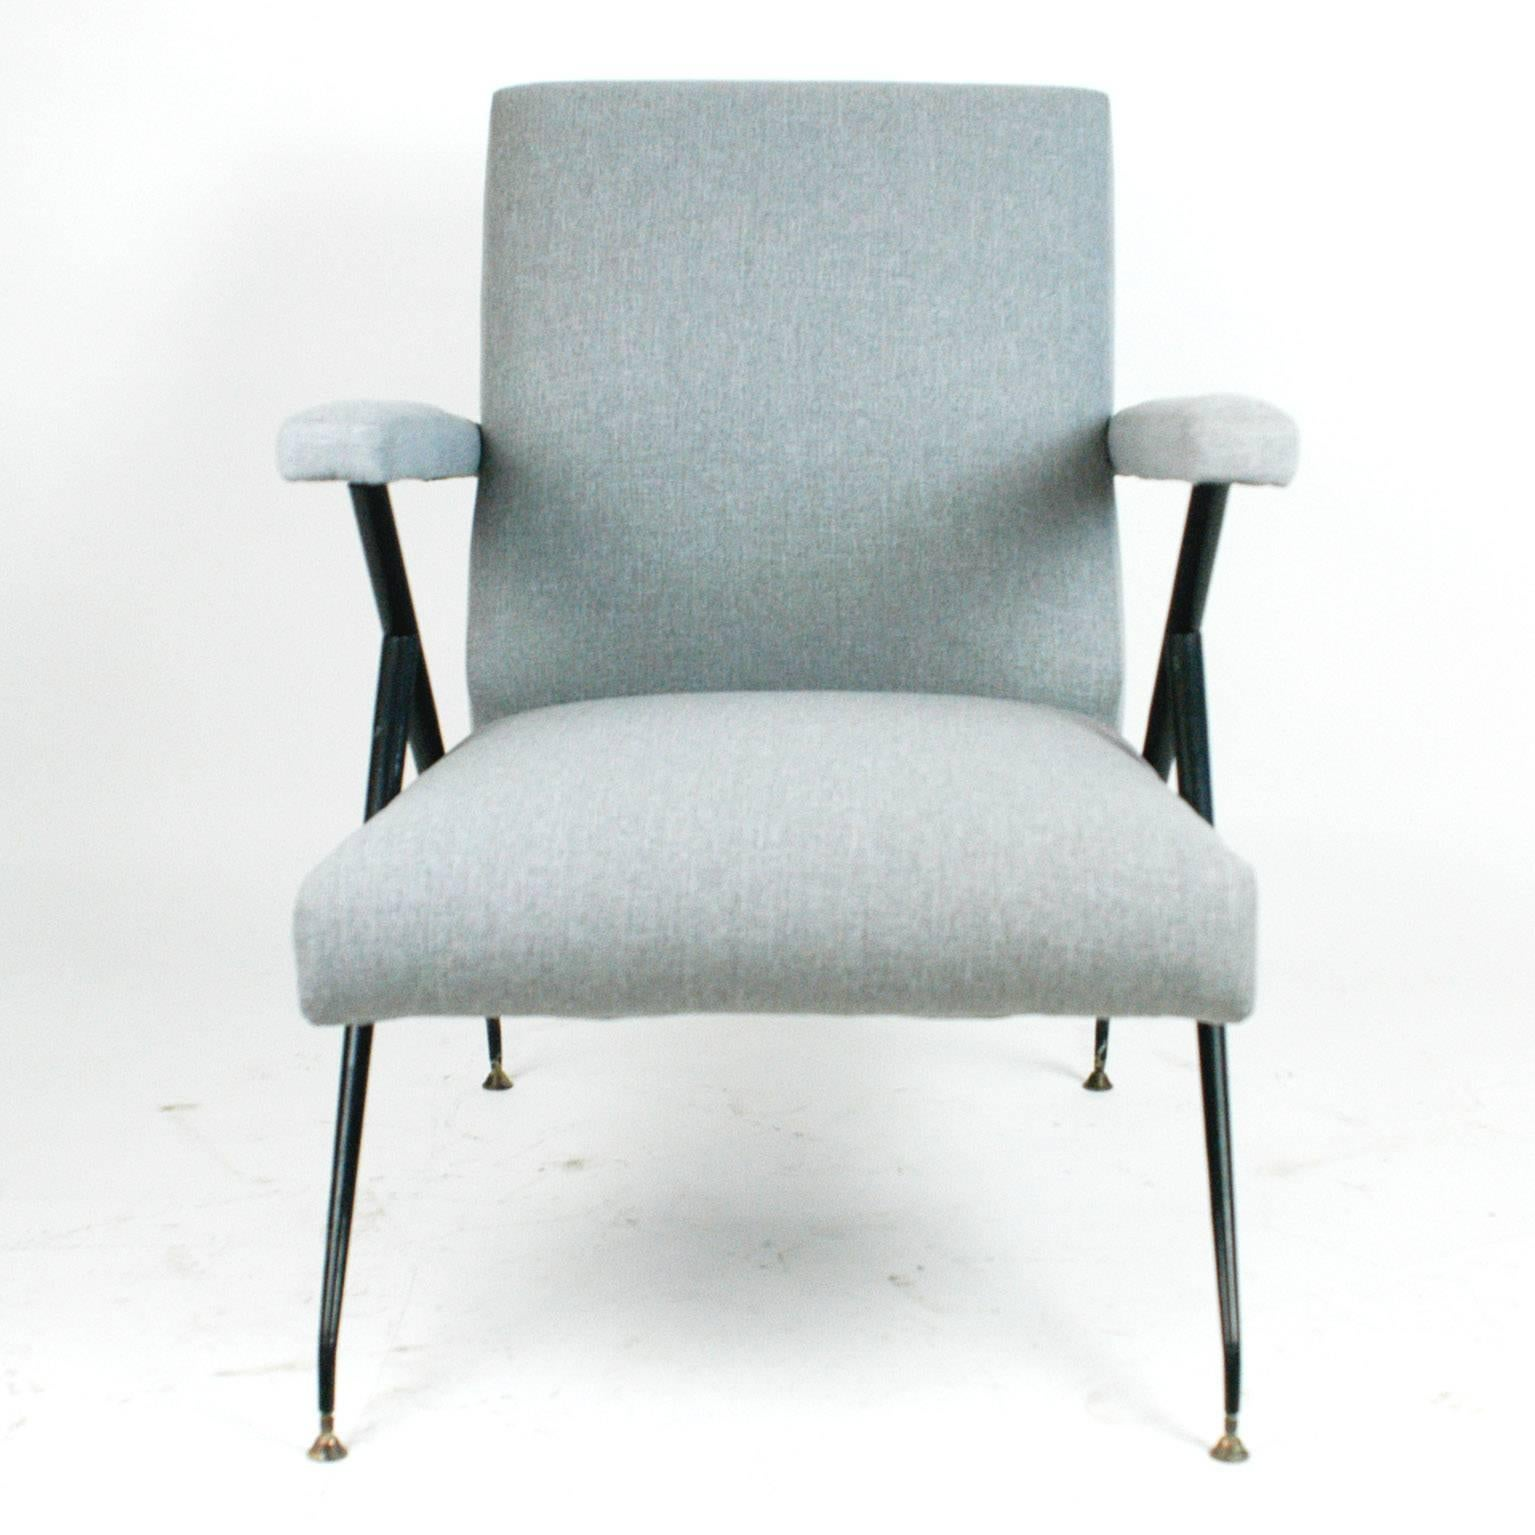 Mid Century Modern Light Grey Italian Midcentury Reclinable Lounge Chair In  The Style Of Ico